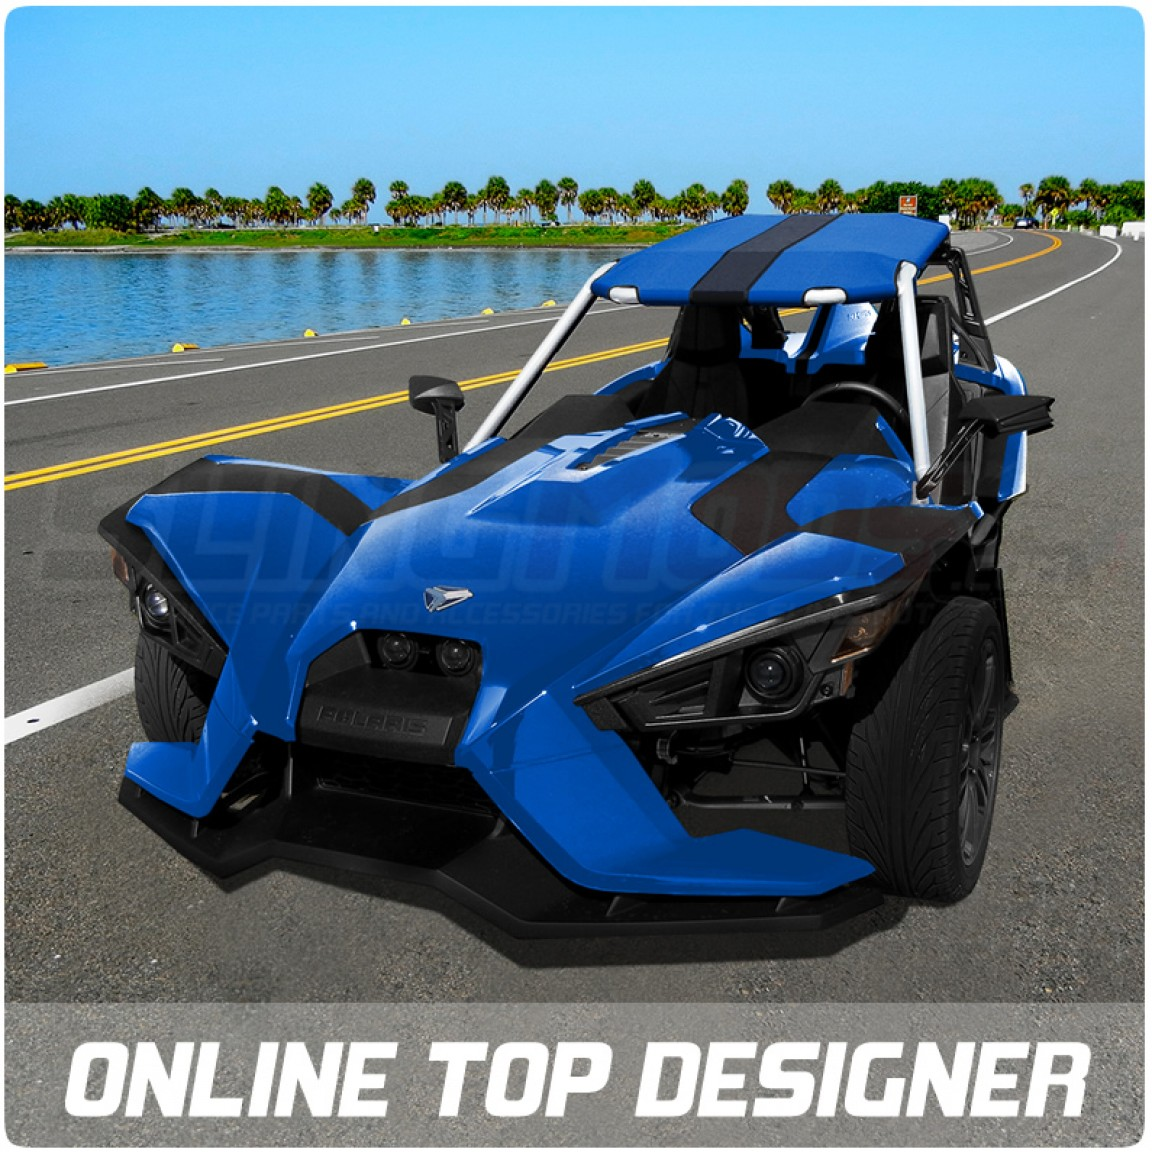 Polaris slingshot v back roof top by bullet speed and Custom car designer online